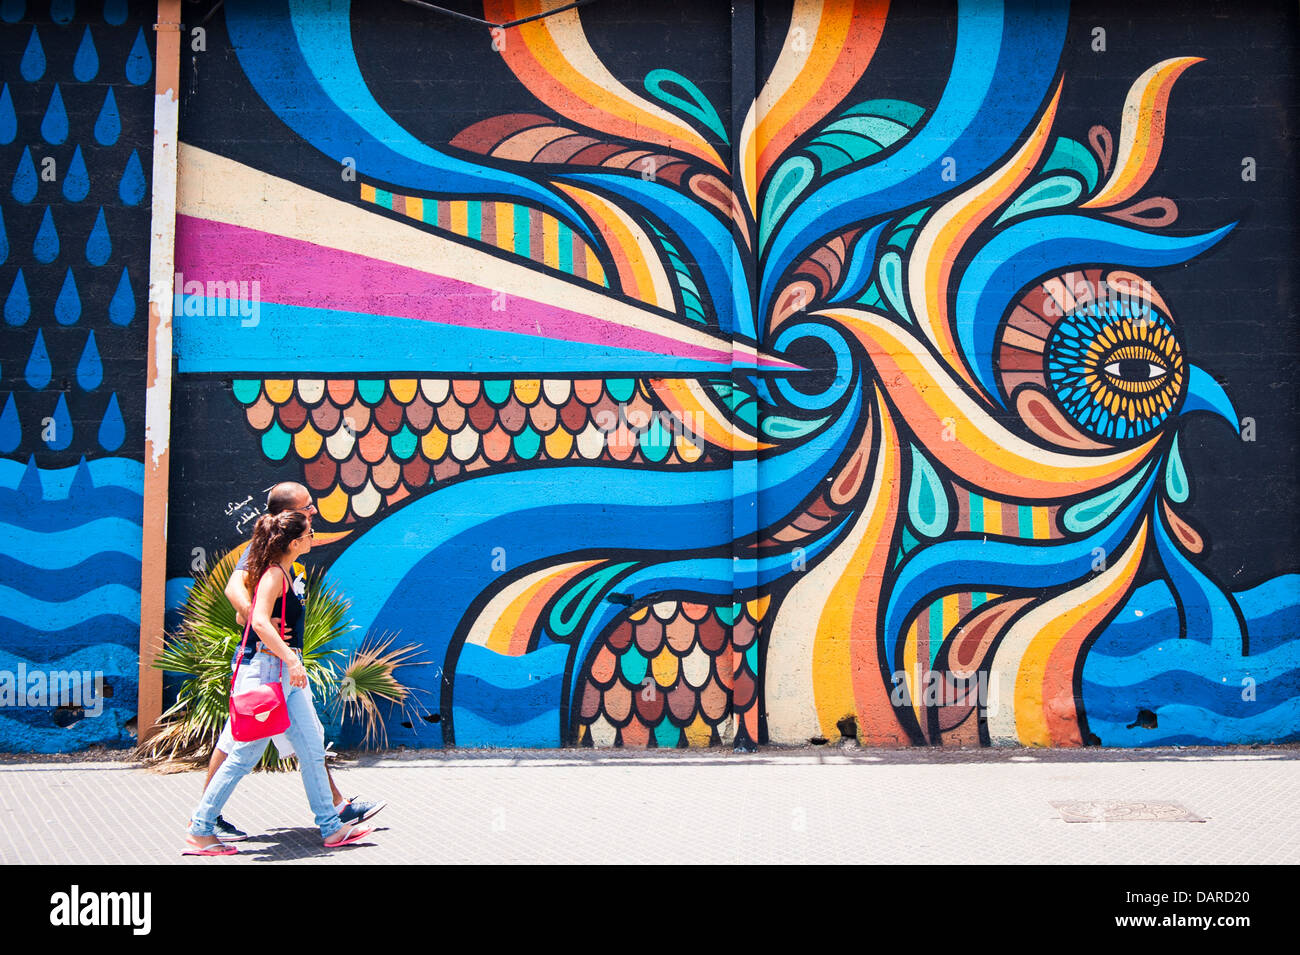 Street Art Wall Art Tel Stock Photos Street Art Wall Art Tel Stock